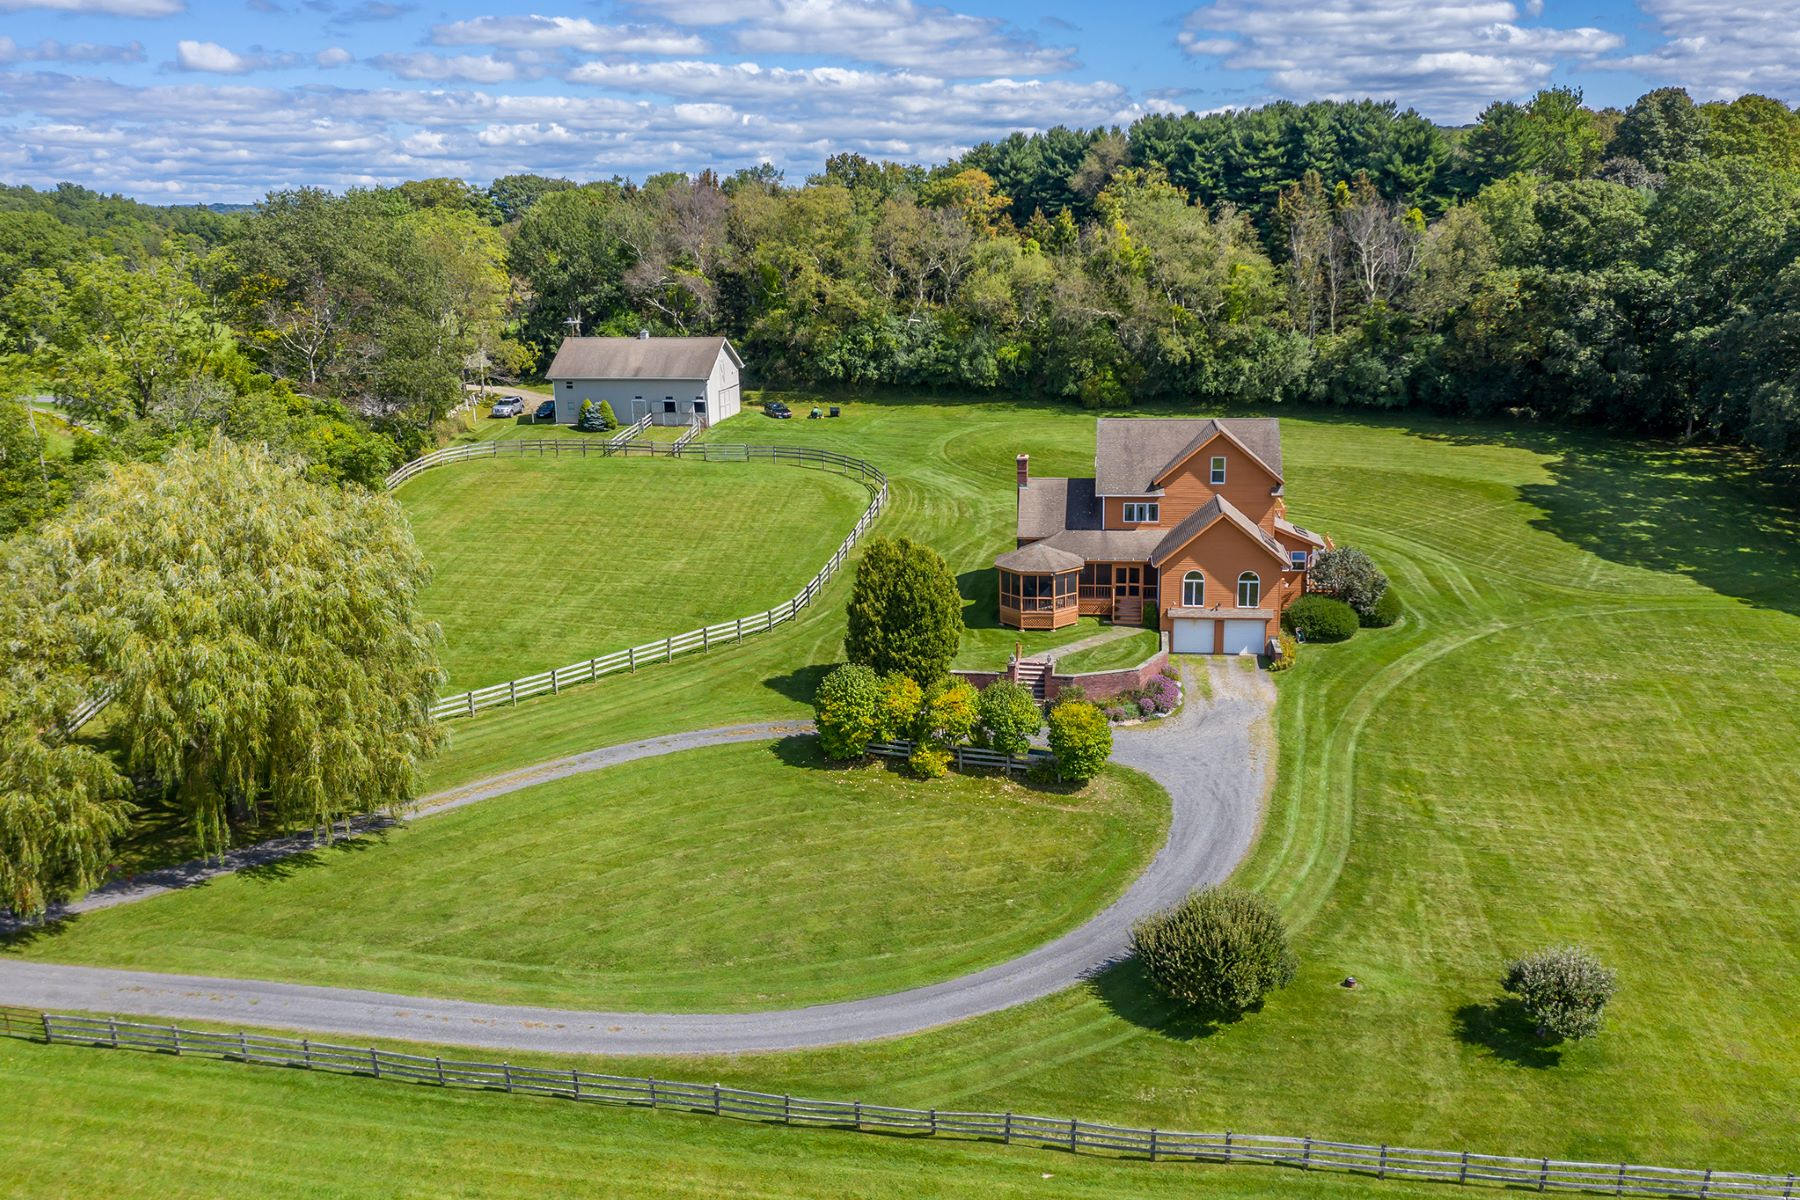 Single Family Homes for Active at Contemporary Farmhouse on 10 Beautiful, Open Acres 91 Fairchild Road Sharon, Connecticut 06069 United States